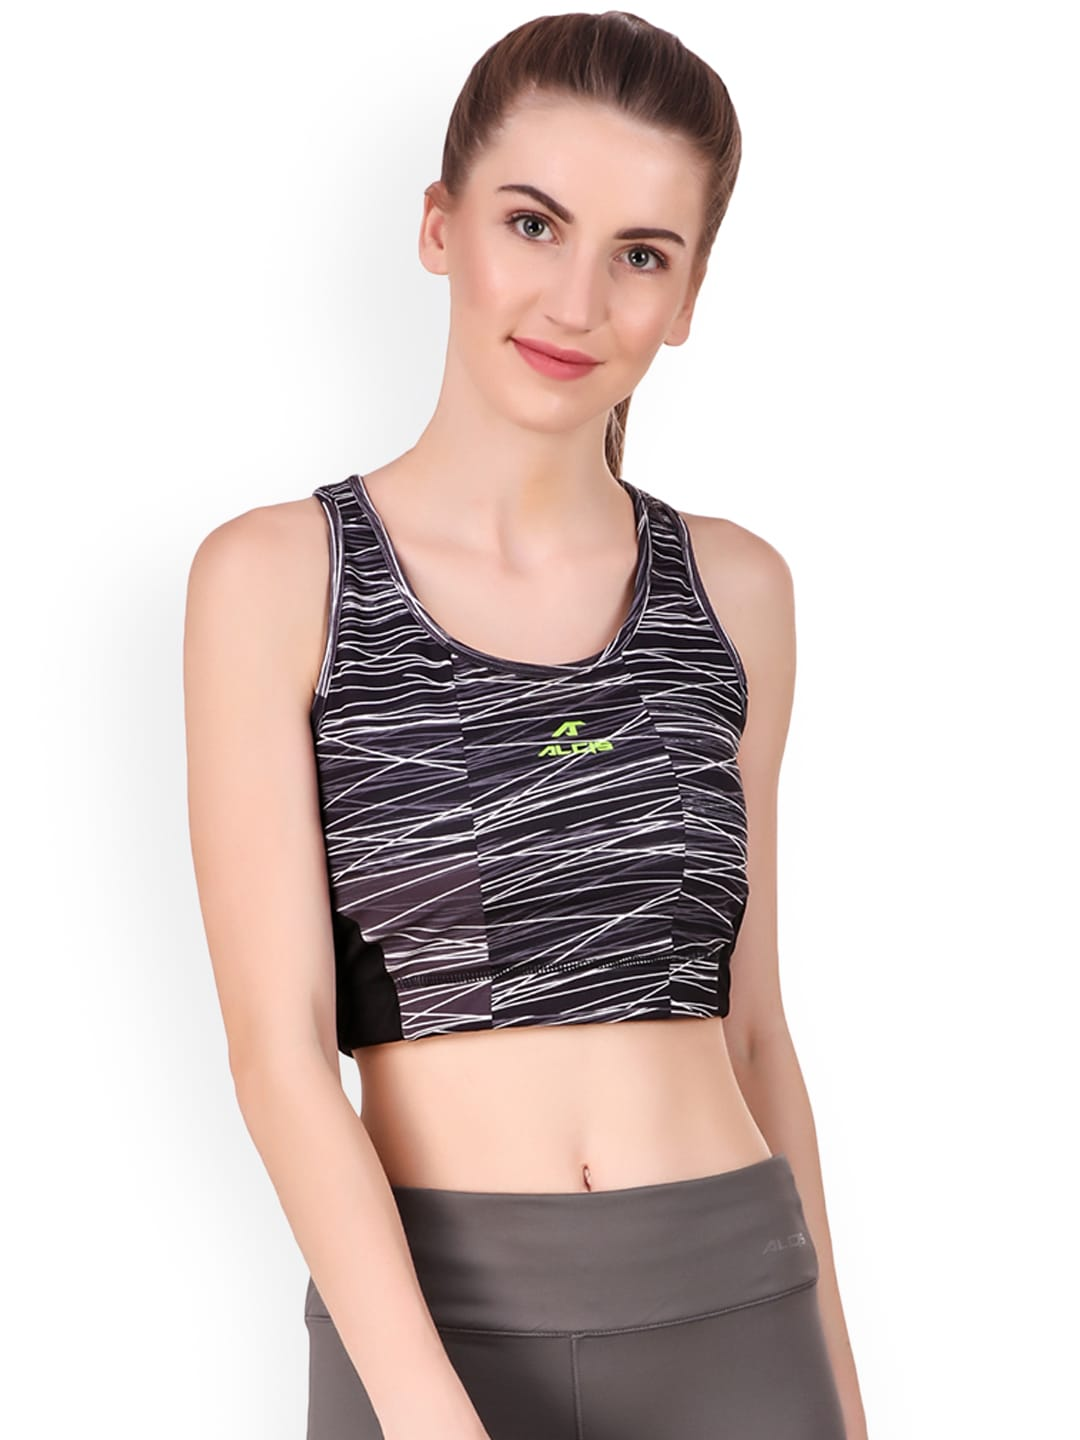 894135f7a94 Women Bra Tops Sports - Buy Women Bra Tops Sports online in India